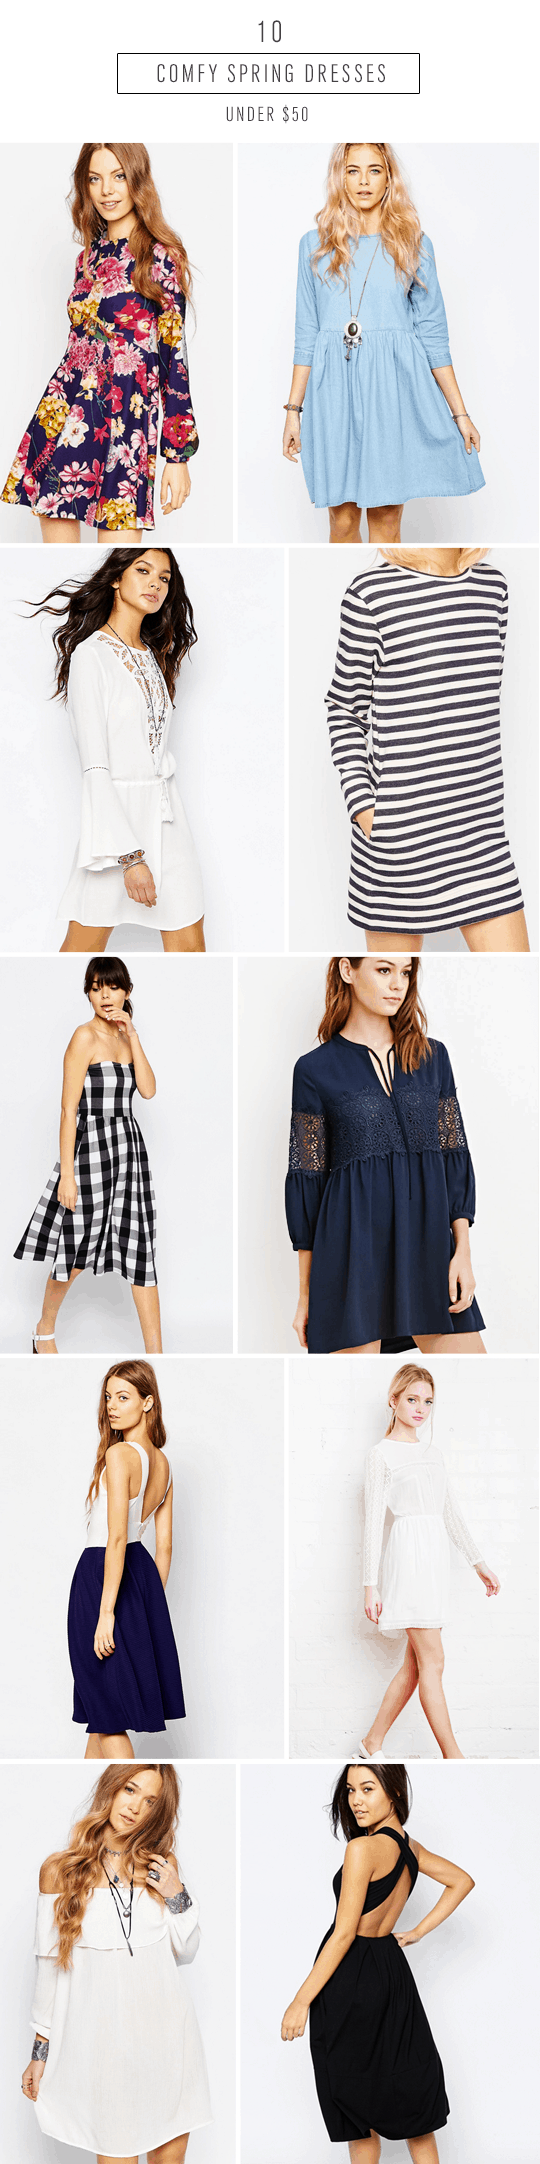 2016 comfortable spring dresses under $50 - sugar and cloth - fashion trend